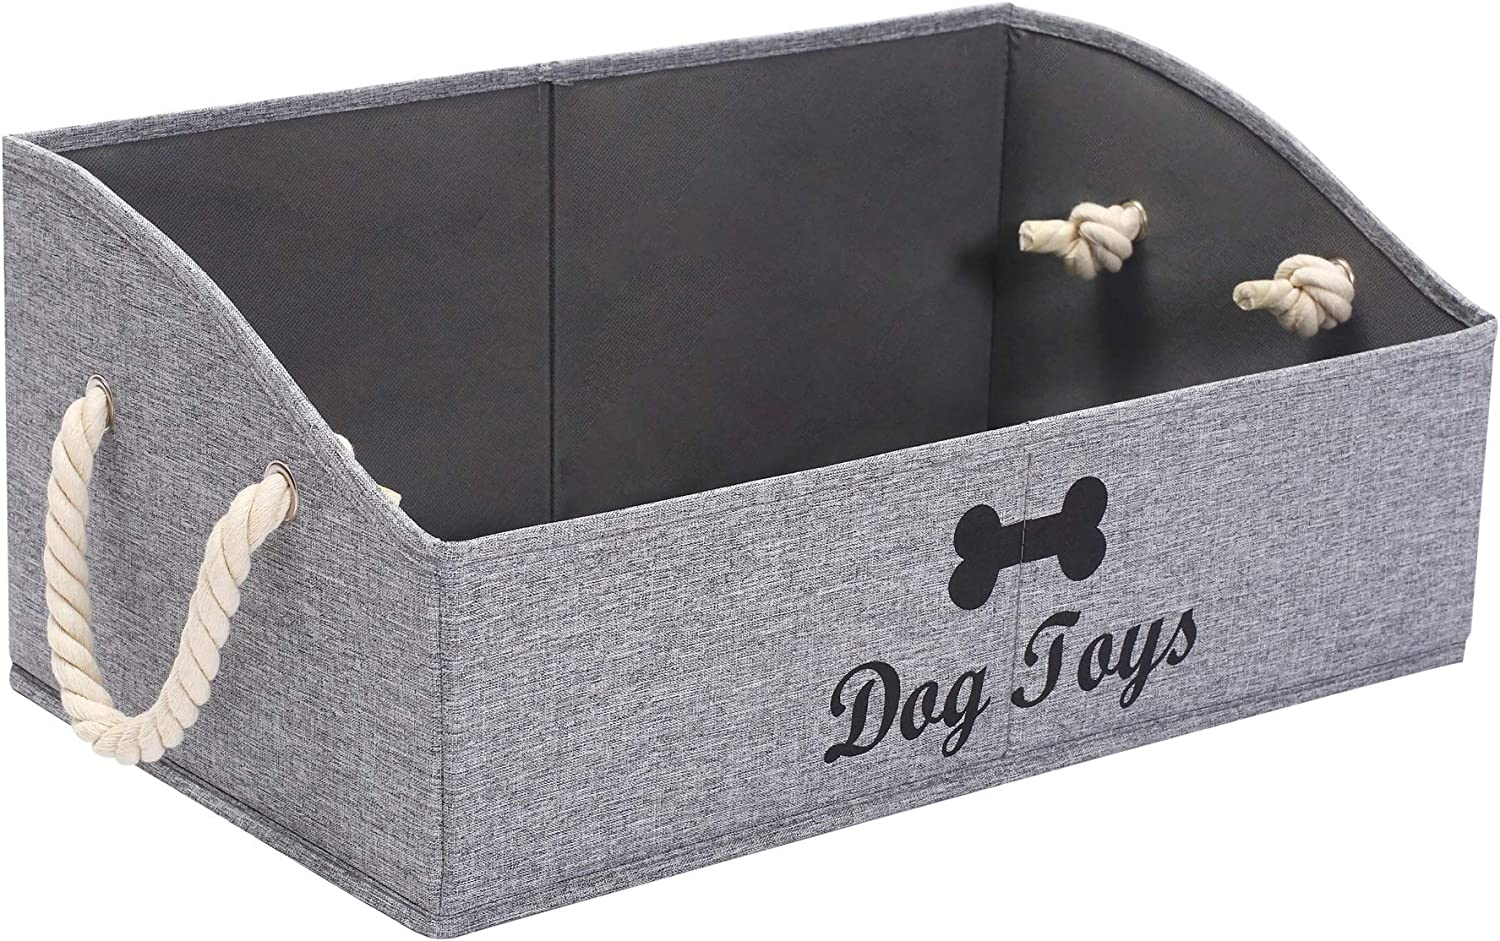 Morezi Canvas Pet Toy and Accessory Storage Bin, Basket Chest Organizer - Perfect for Organizing Pet Toys, Blankets, Leashes and Food 0605